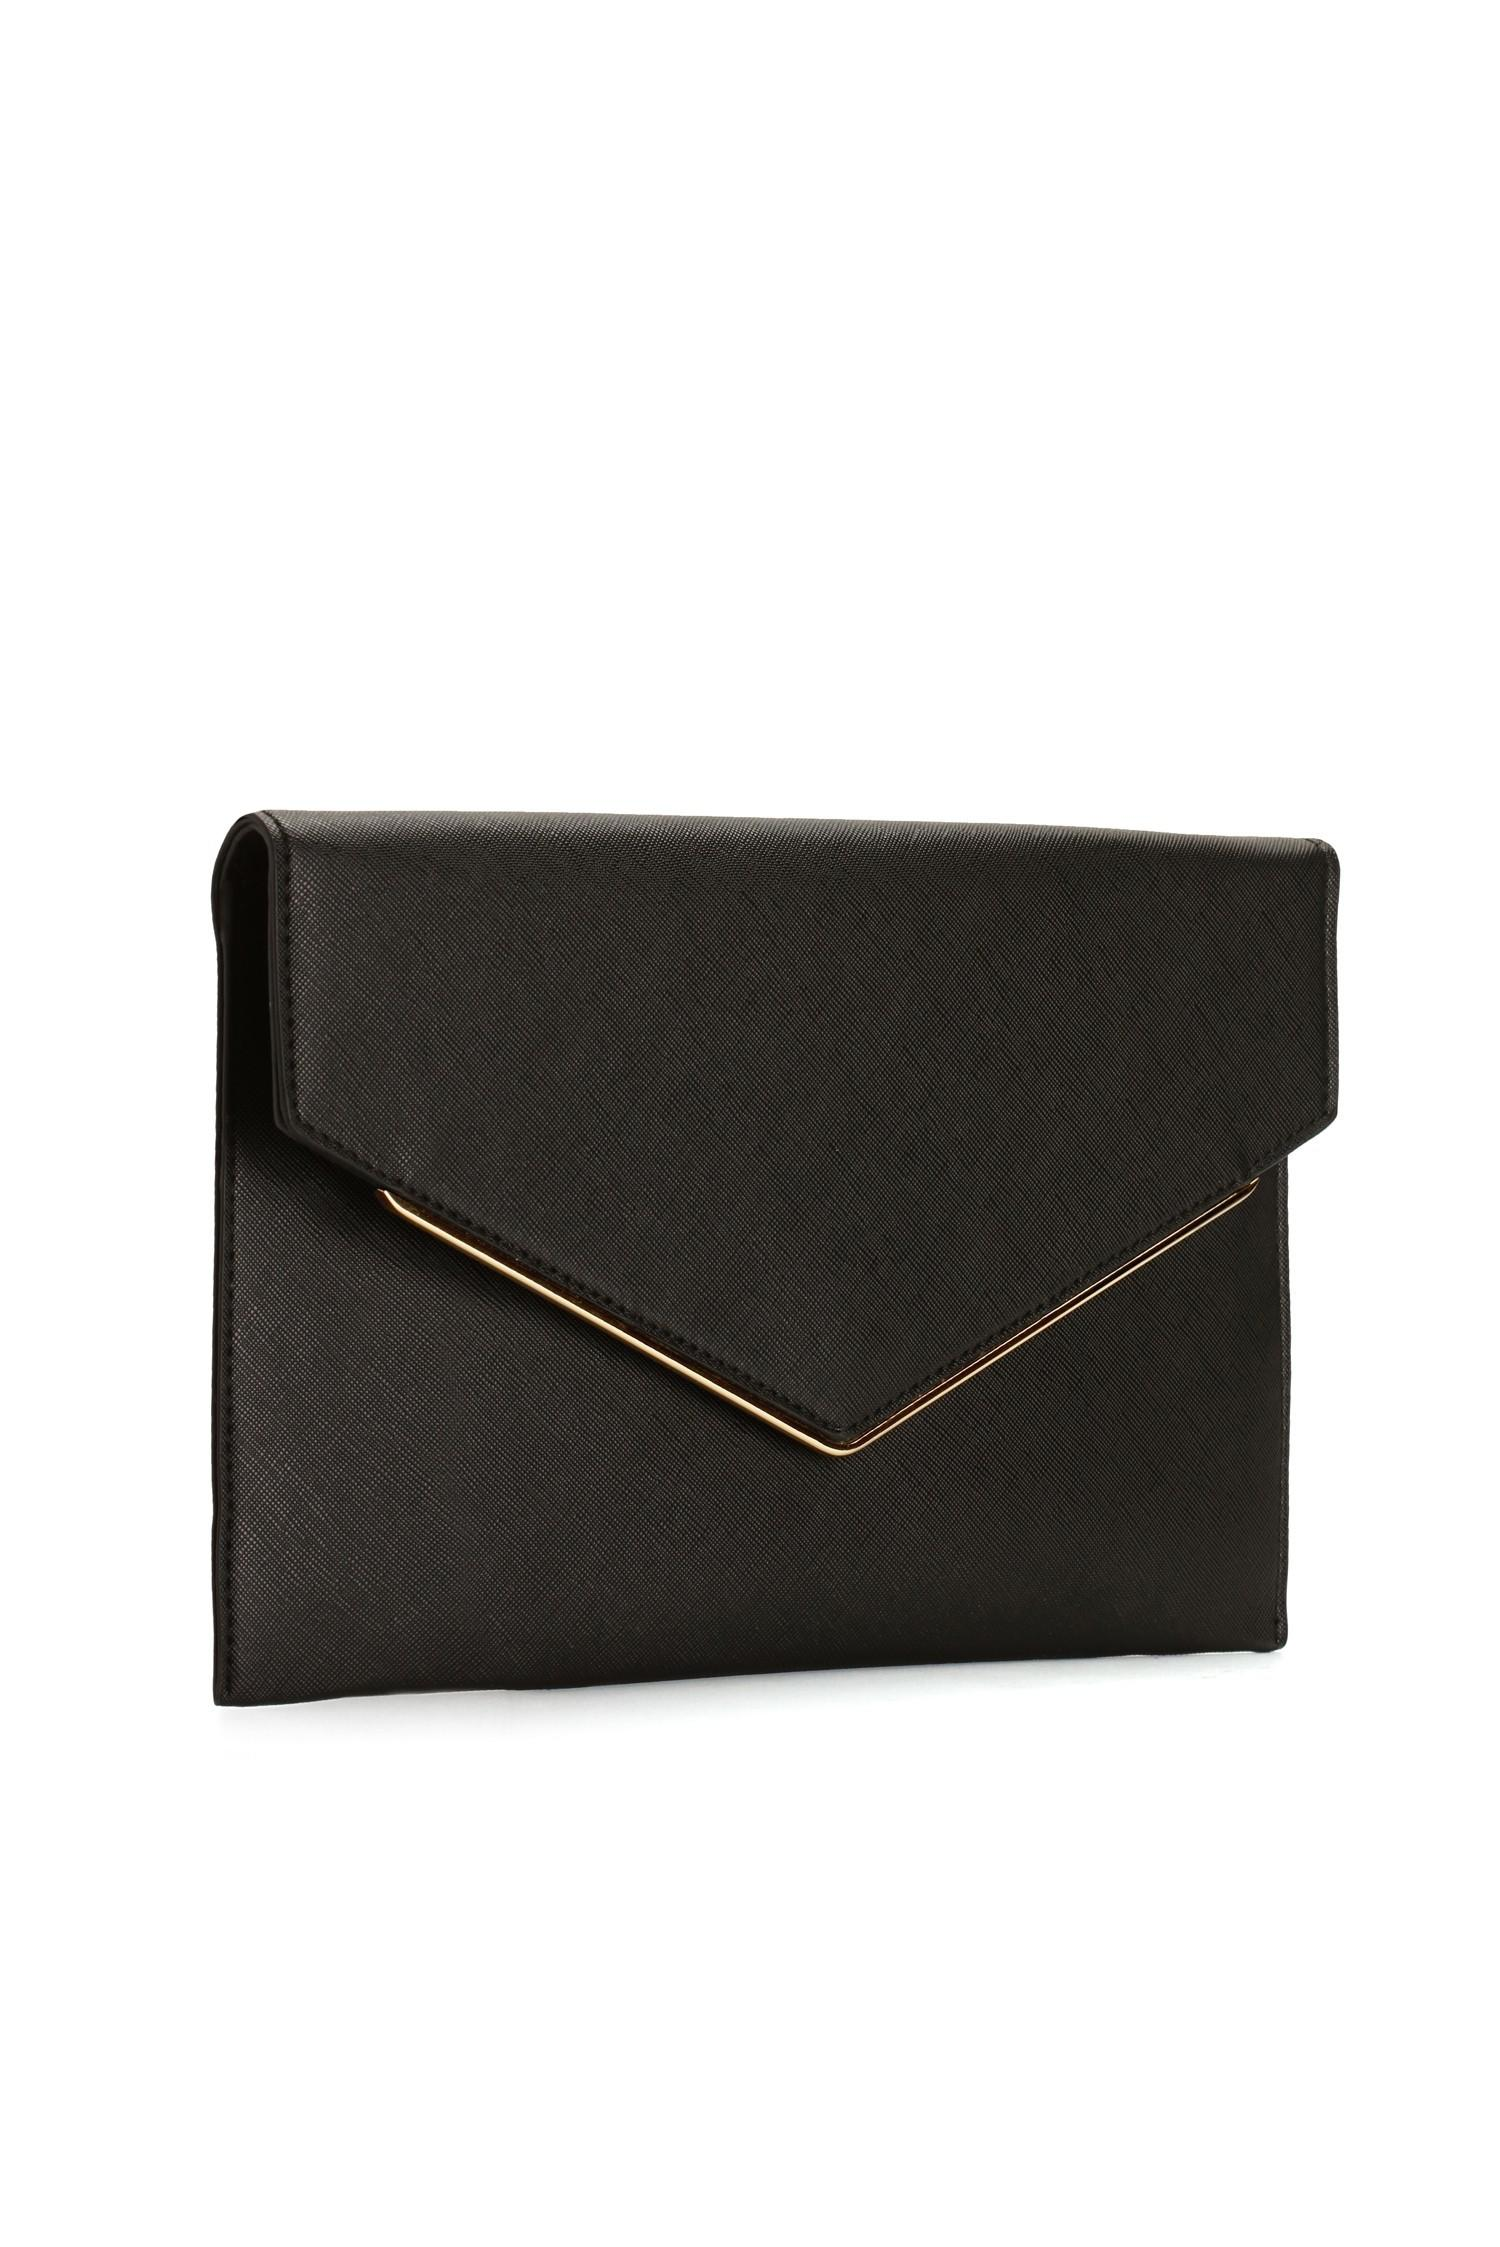 Black Sleek Envelope Clutch